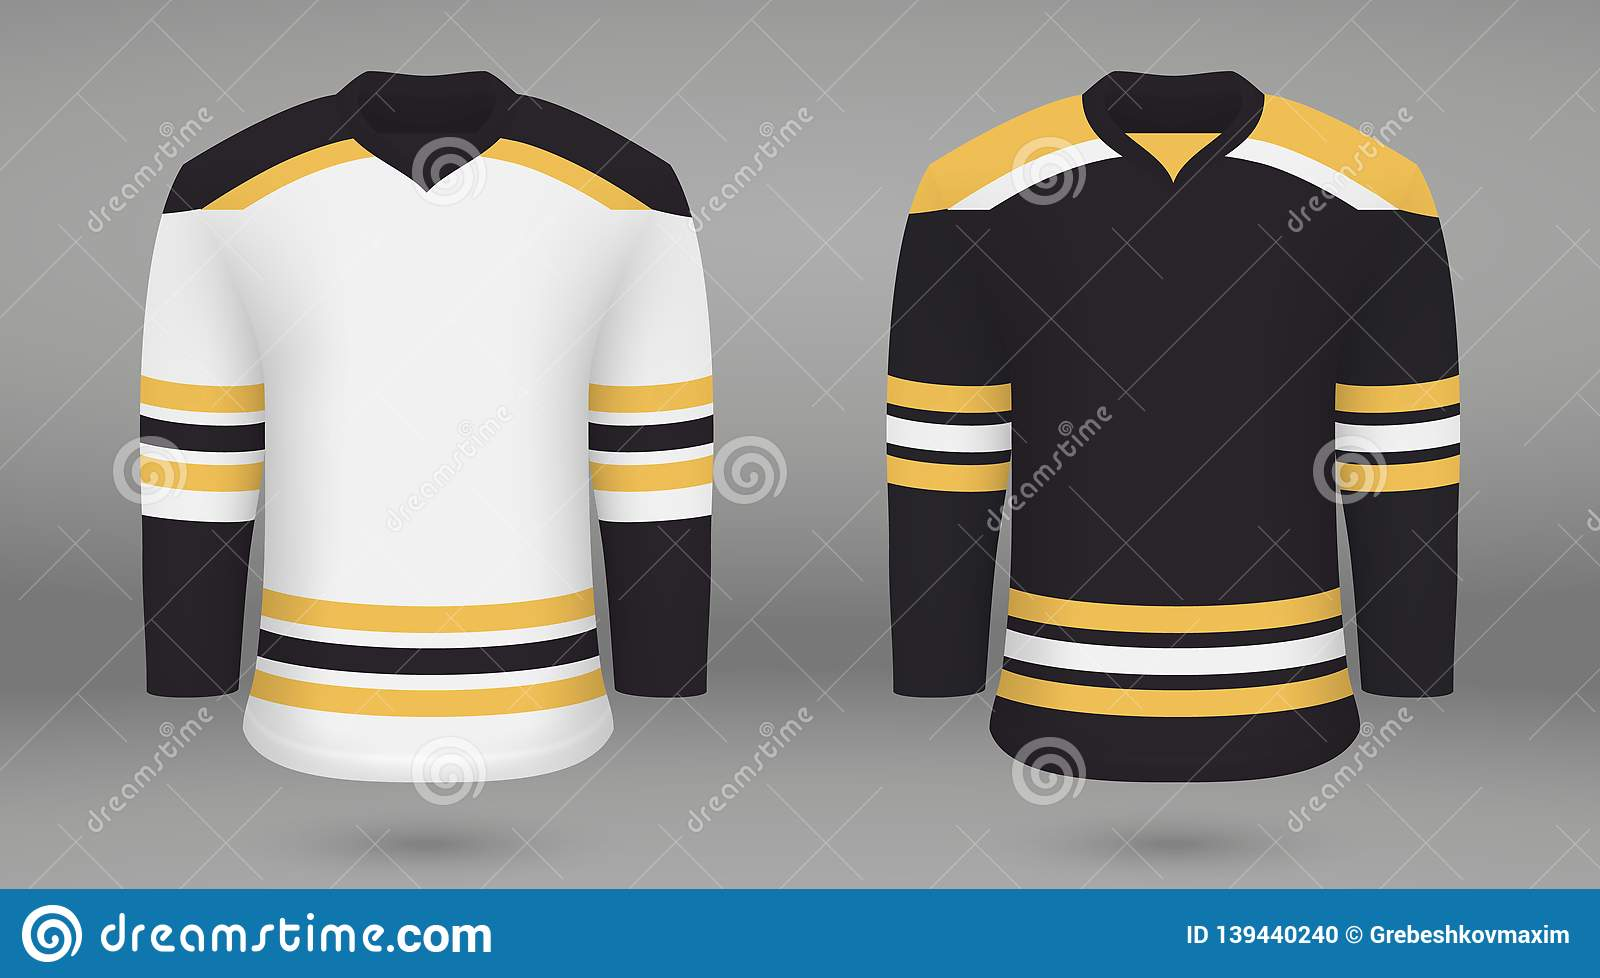 size 40 c3230 7701d Shirt Template Forice Hockey Jersey Stock Illustration ...